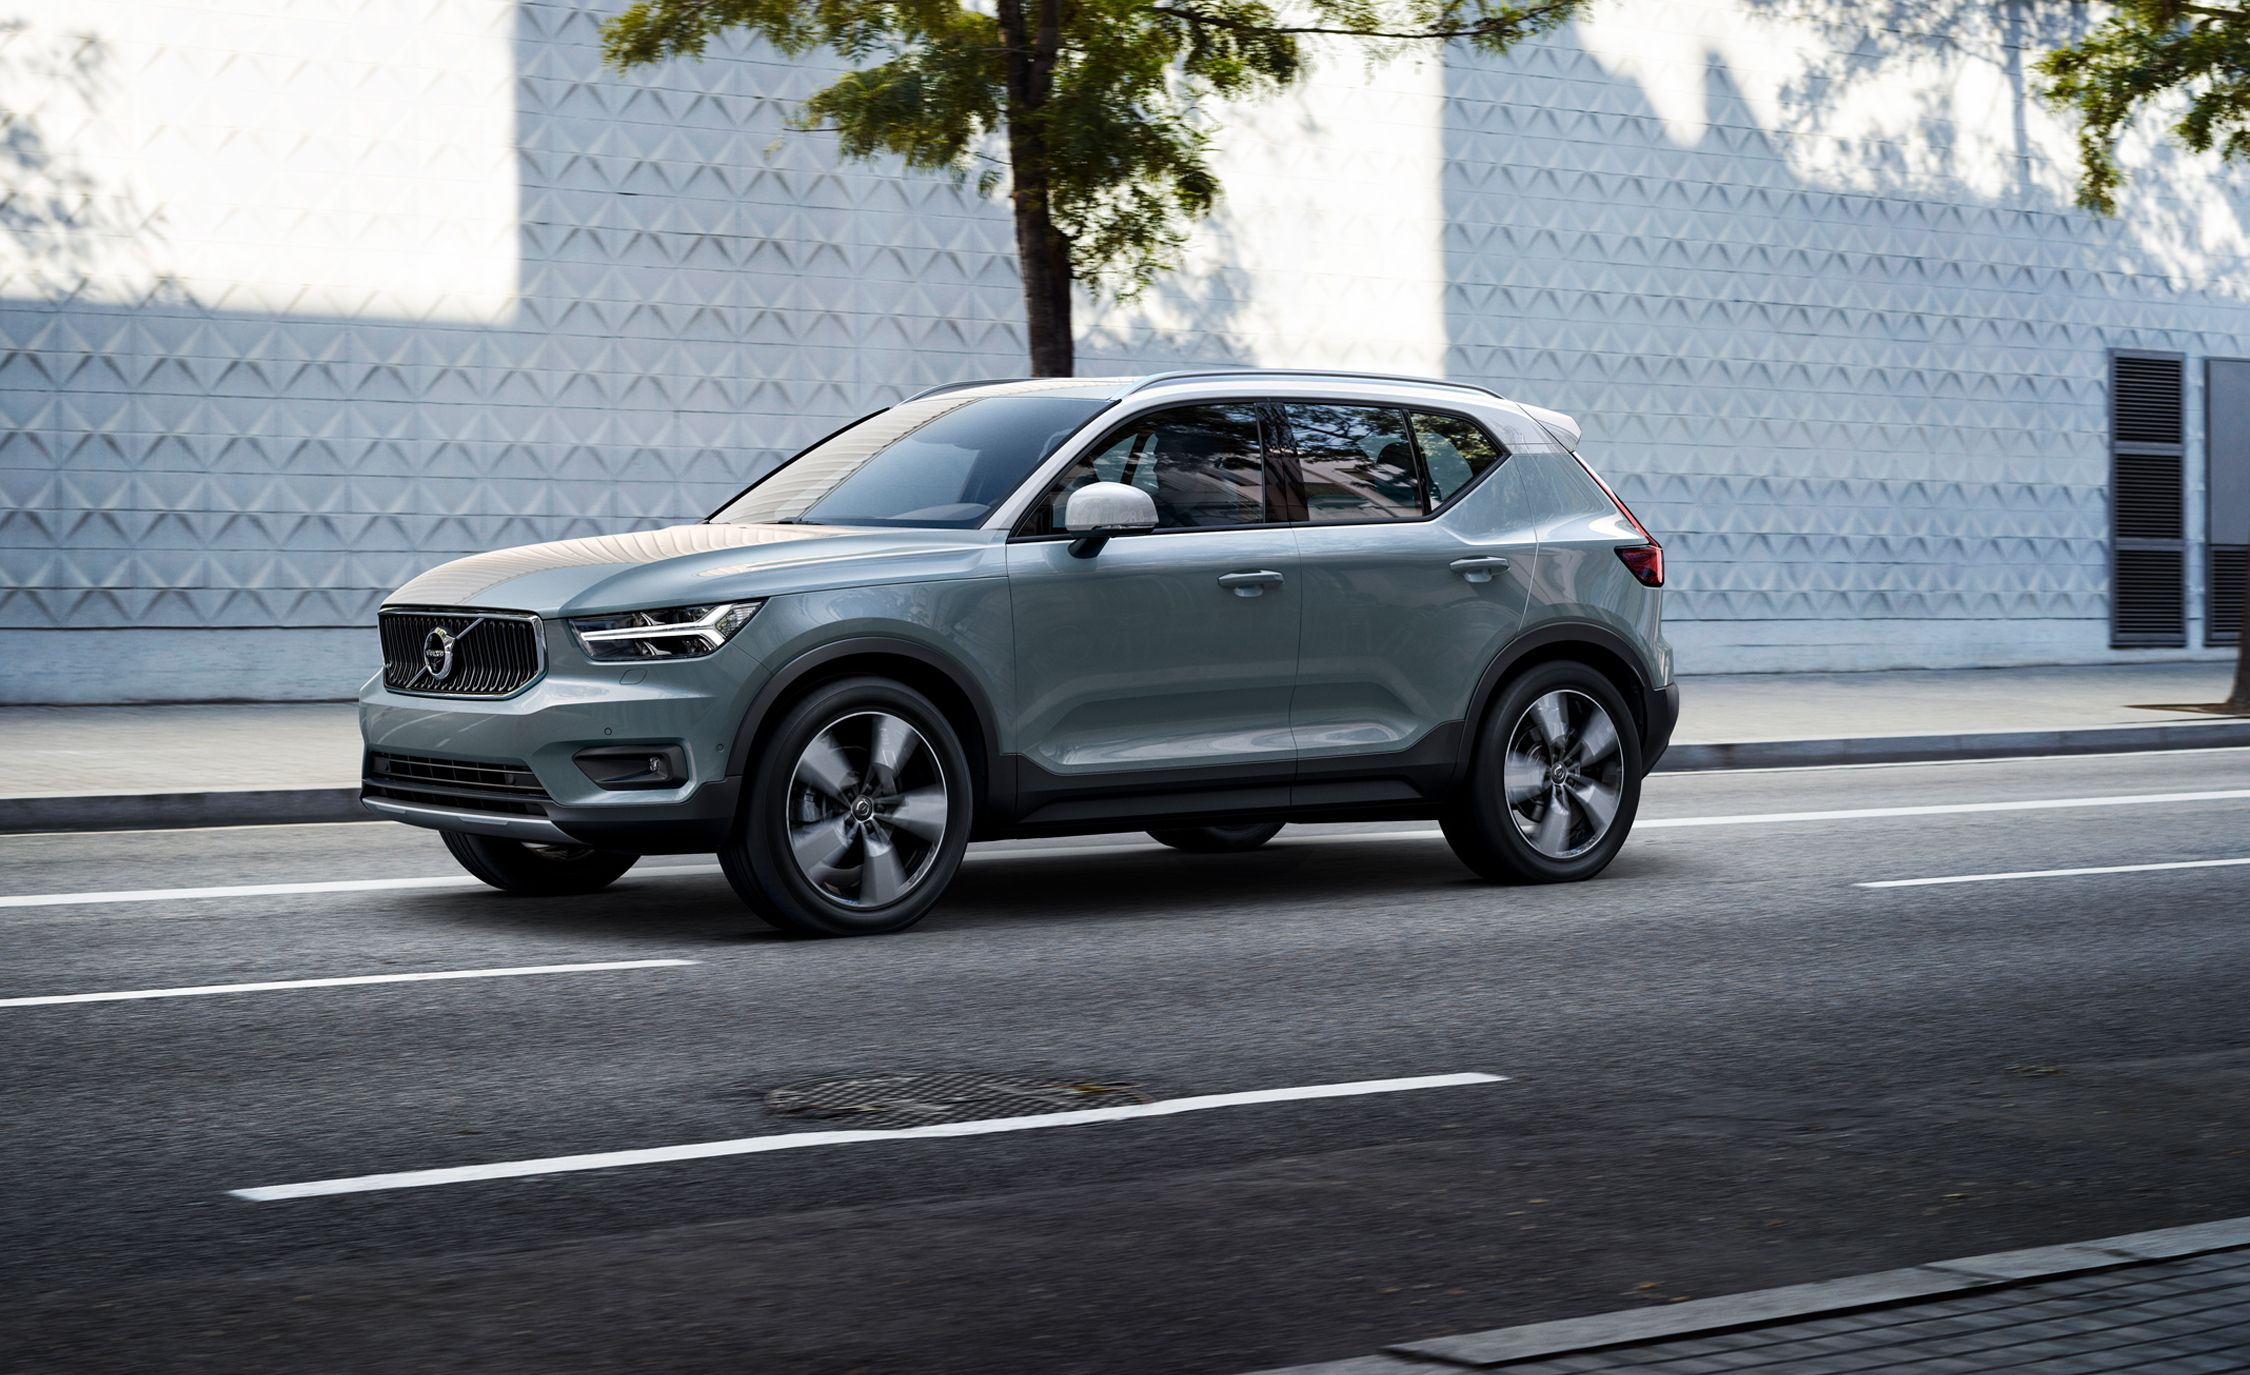 2019 Volvo XC70 Crossover SUV Review >> 2019 Volvo Xc40 Photos And Info News Car And Driver